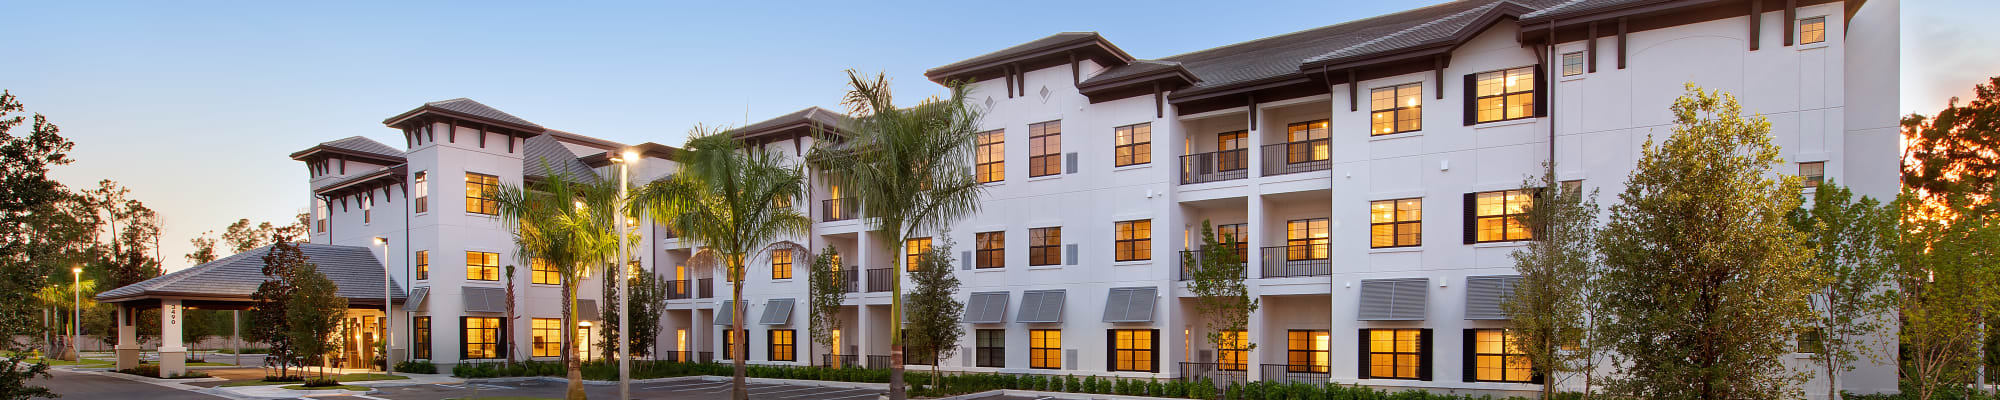 Media Gallery at Keystone Place at Four Mile Cove in Cape Coral, Florida